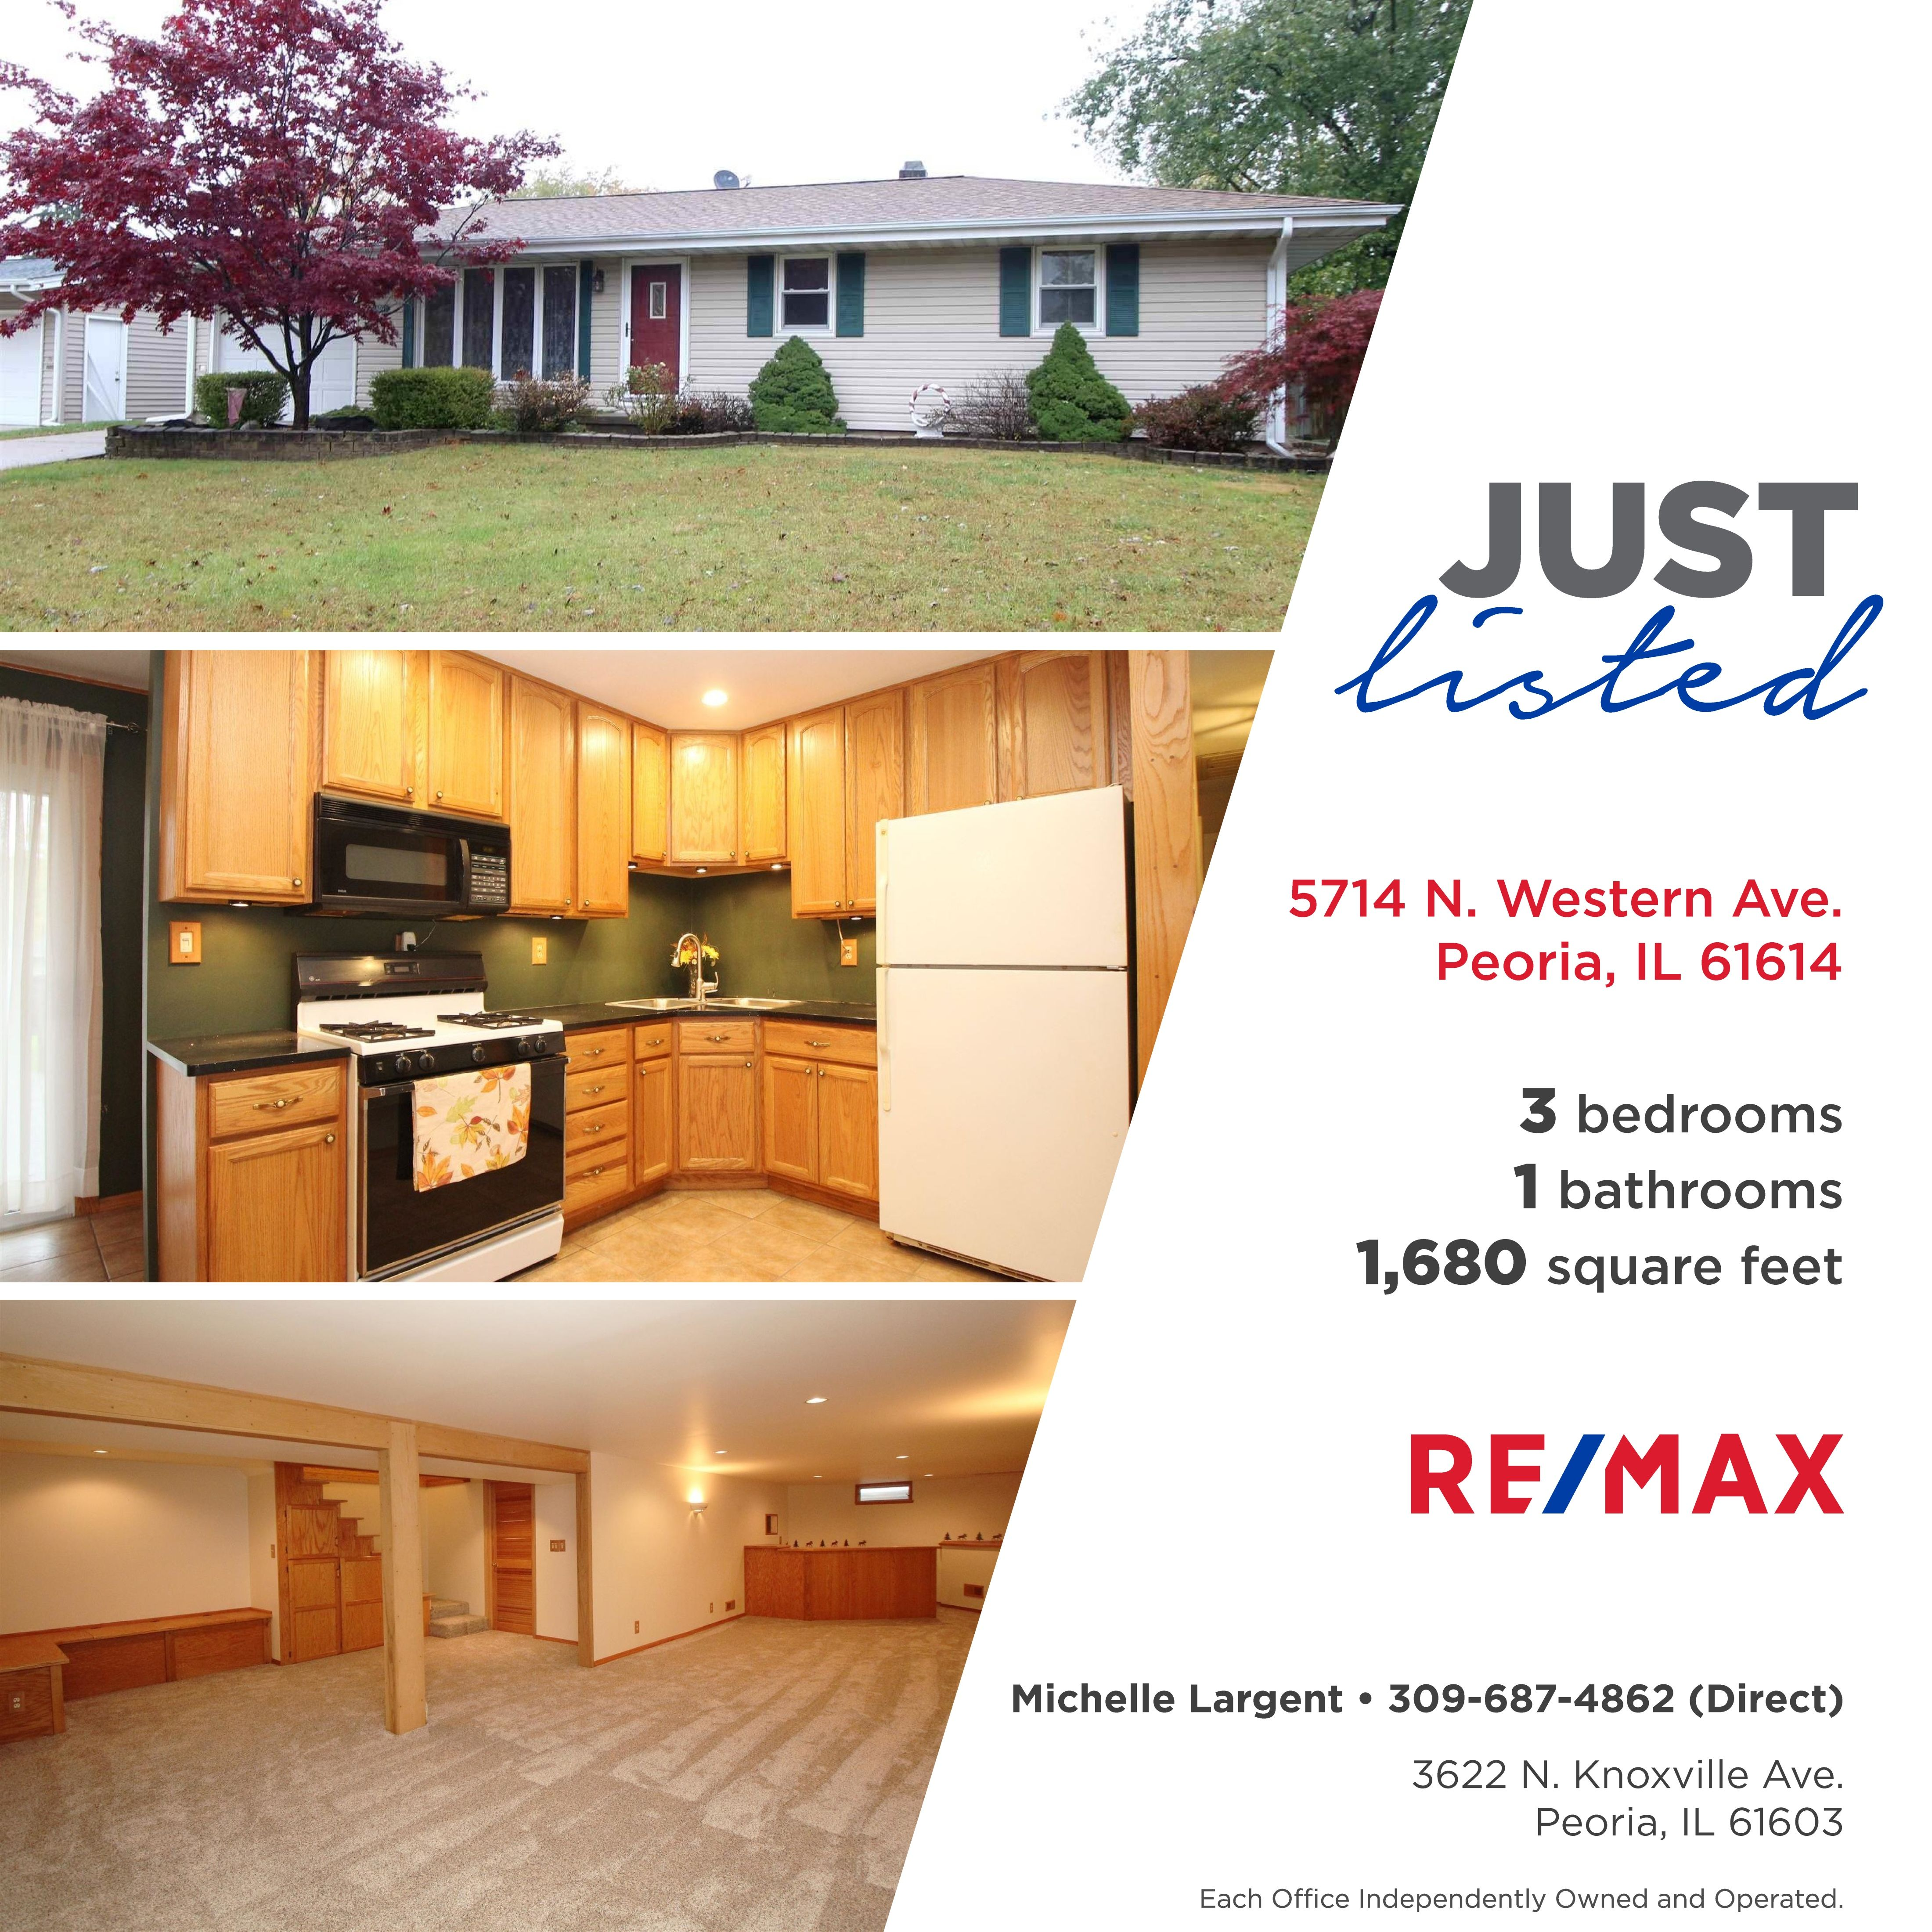 Just Listed 109 900 5714 N Western Ave Peoria Il Pack Your